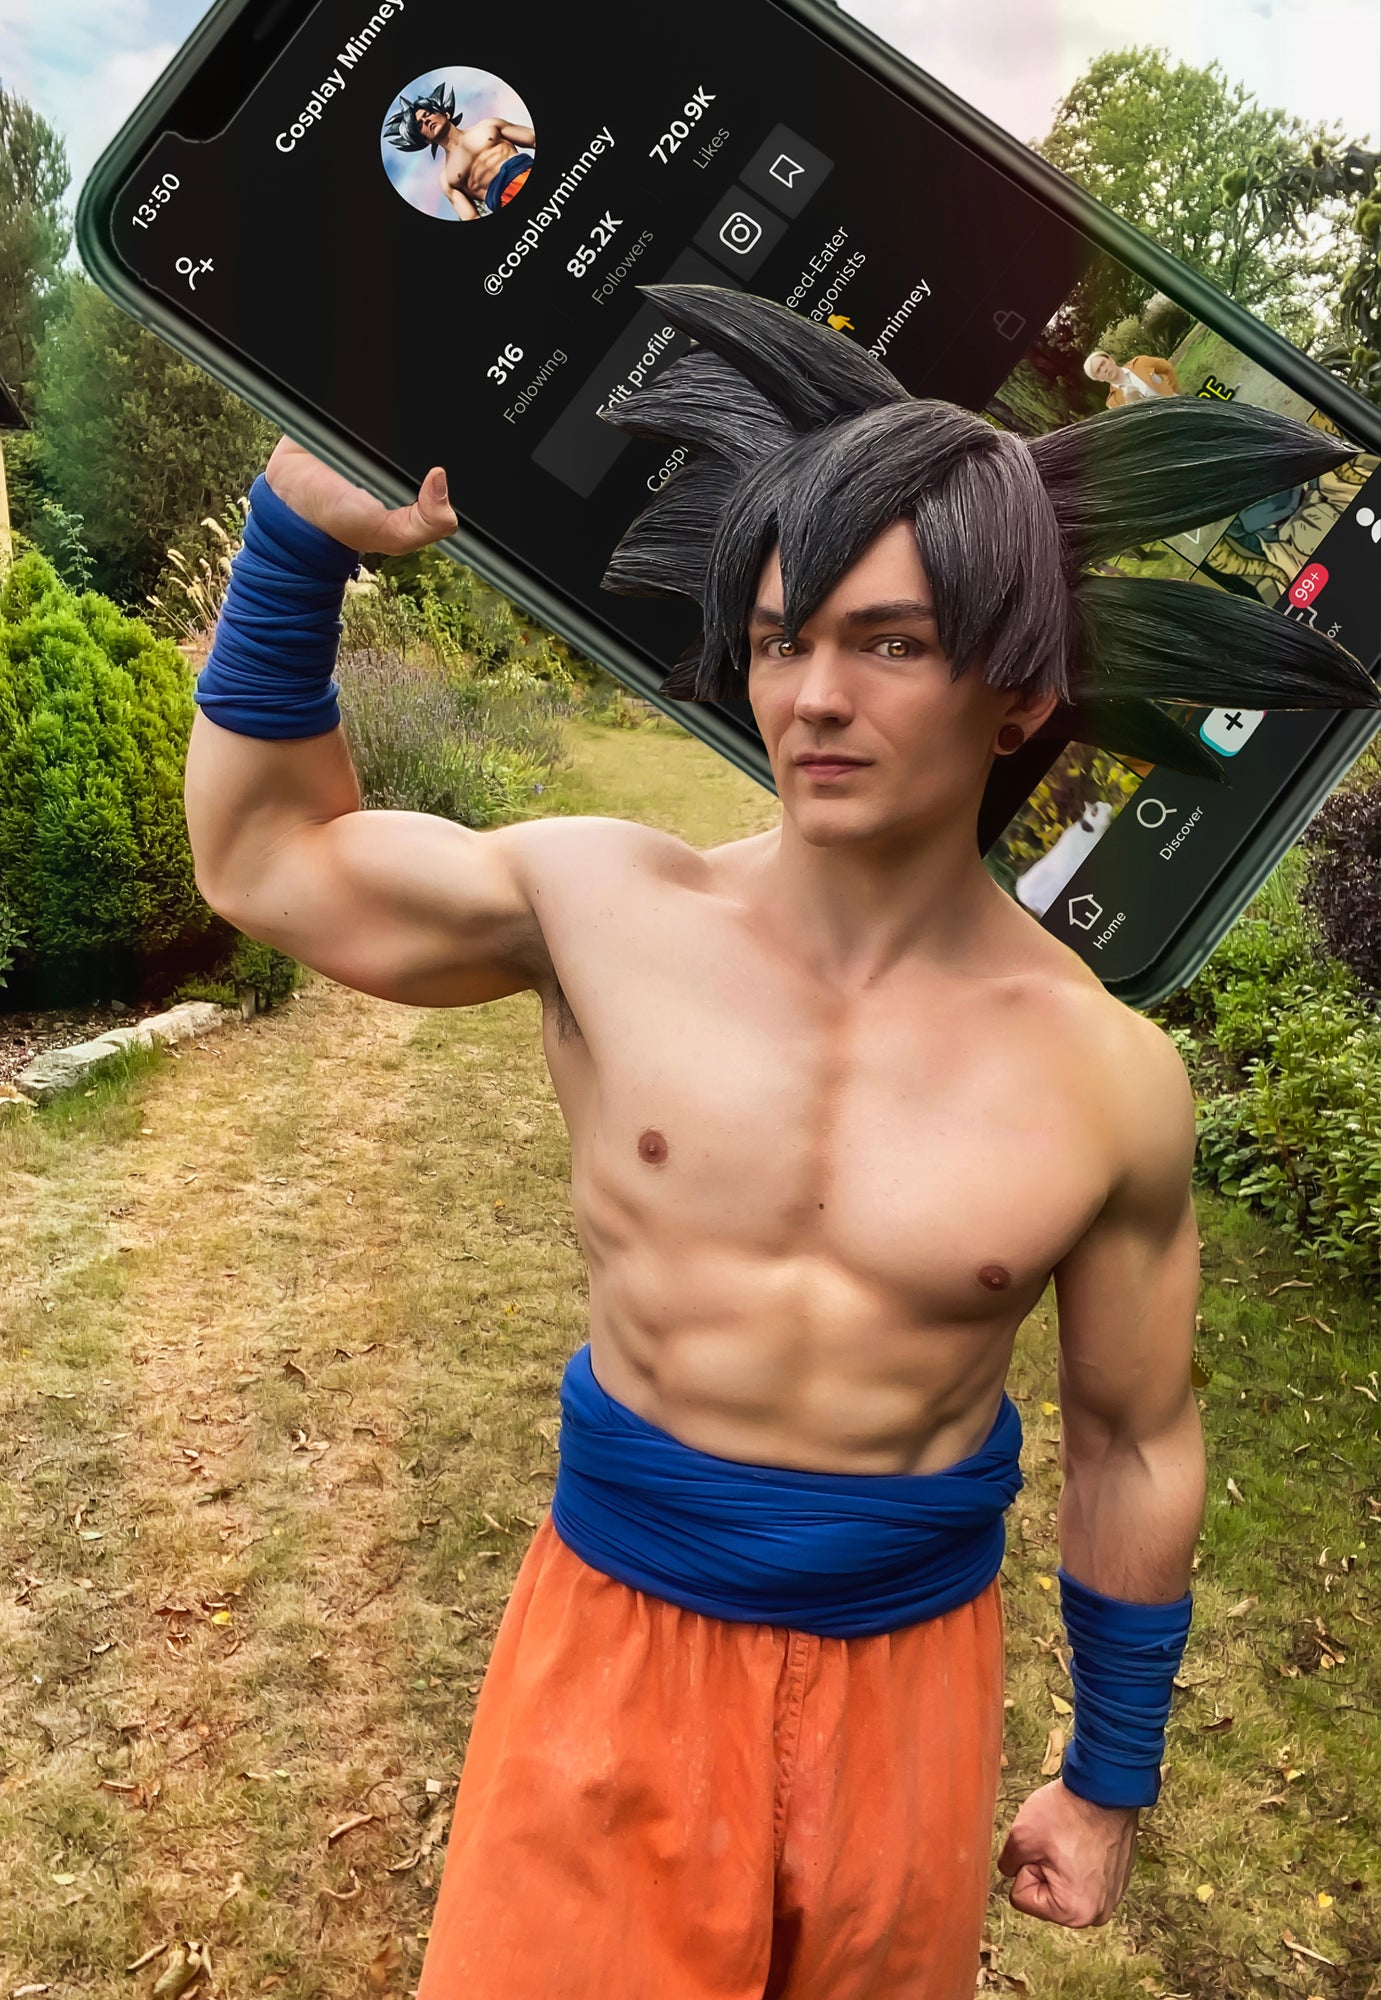 Why every cosplayer should get on tiktok if they want to get noticed - Tiktok Goku Cosplay Minney speaks out